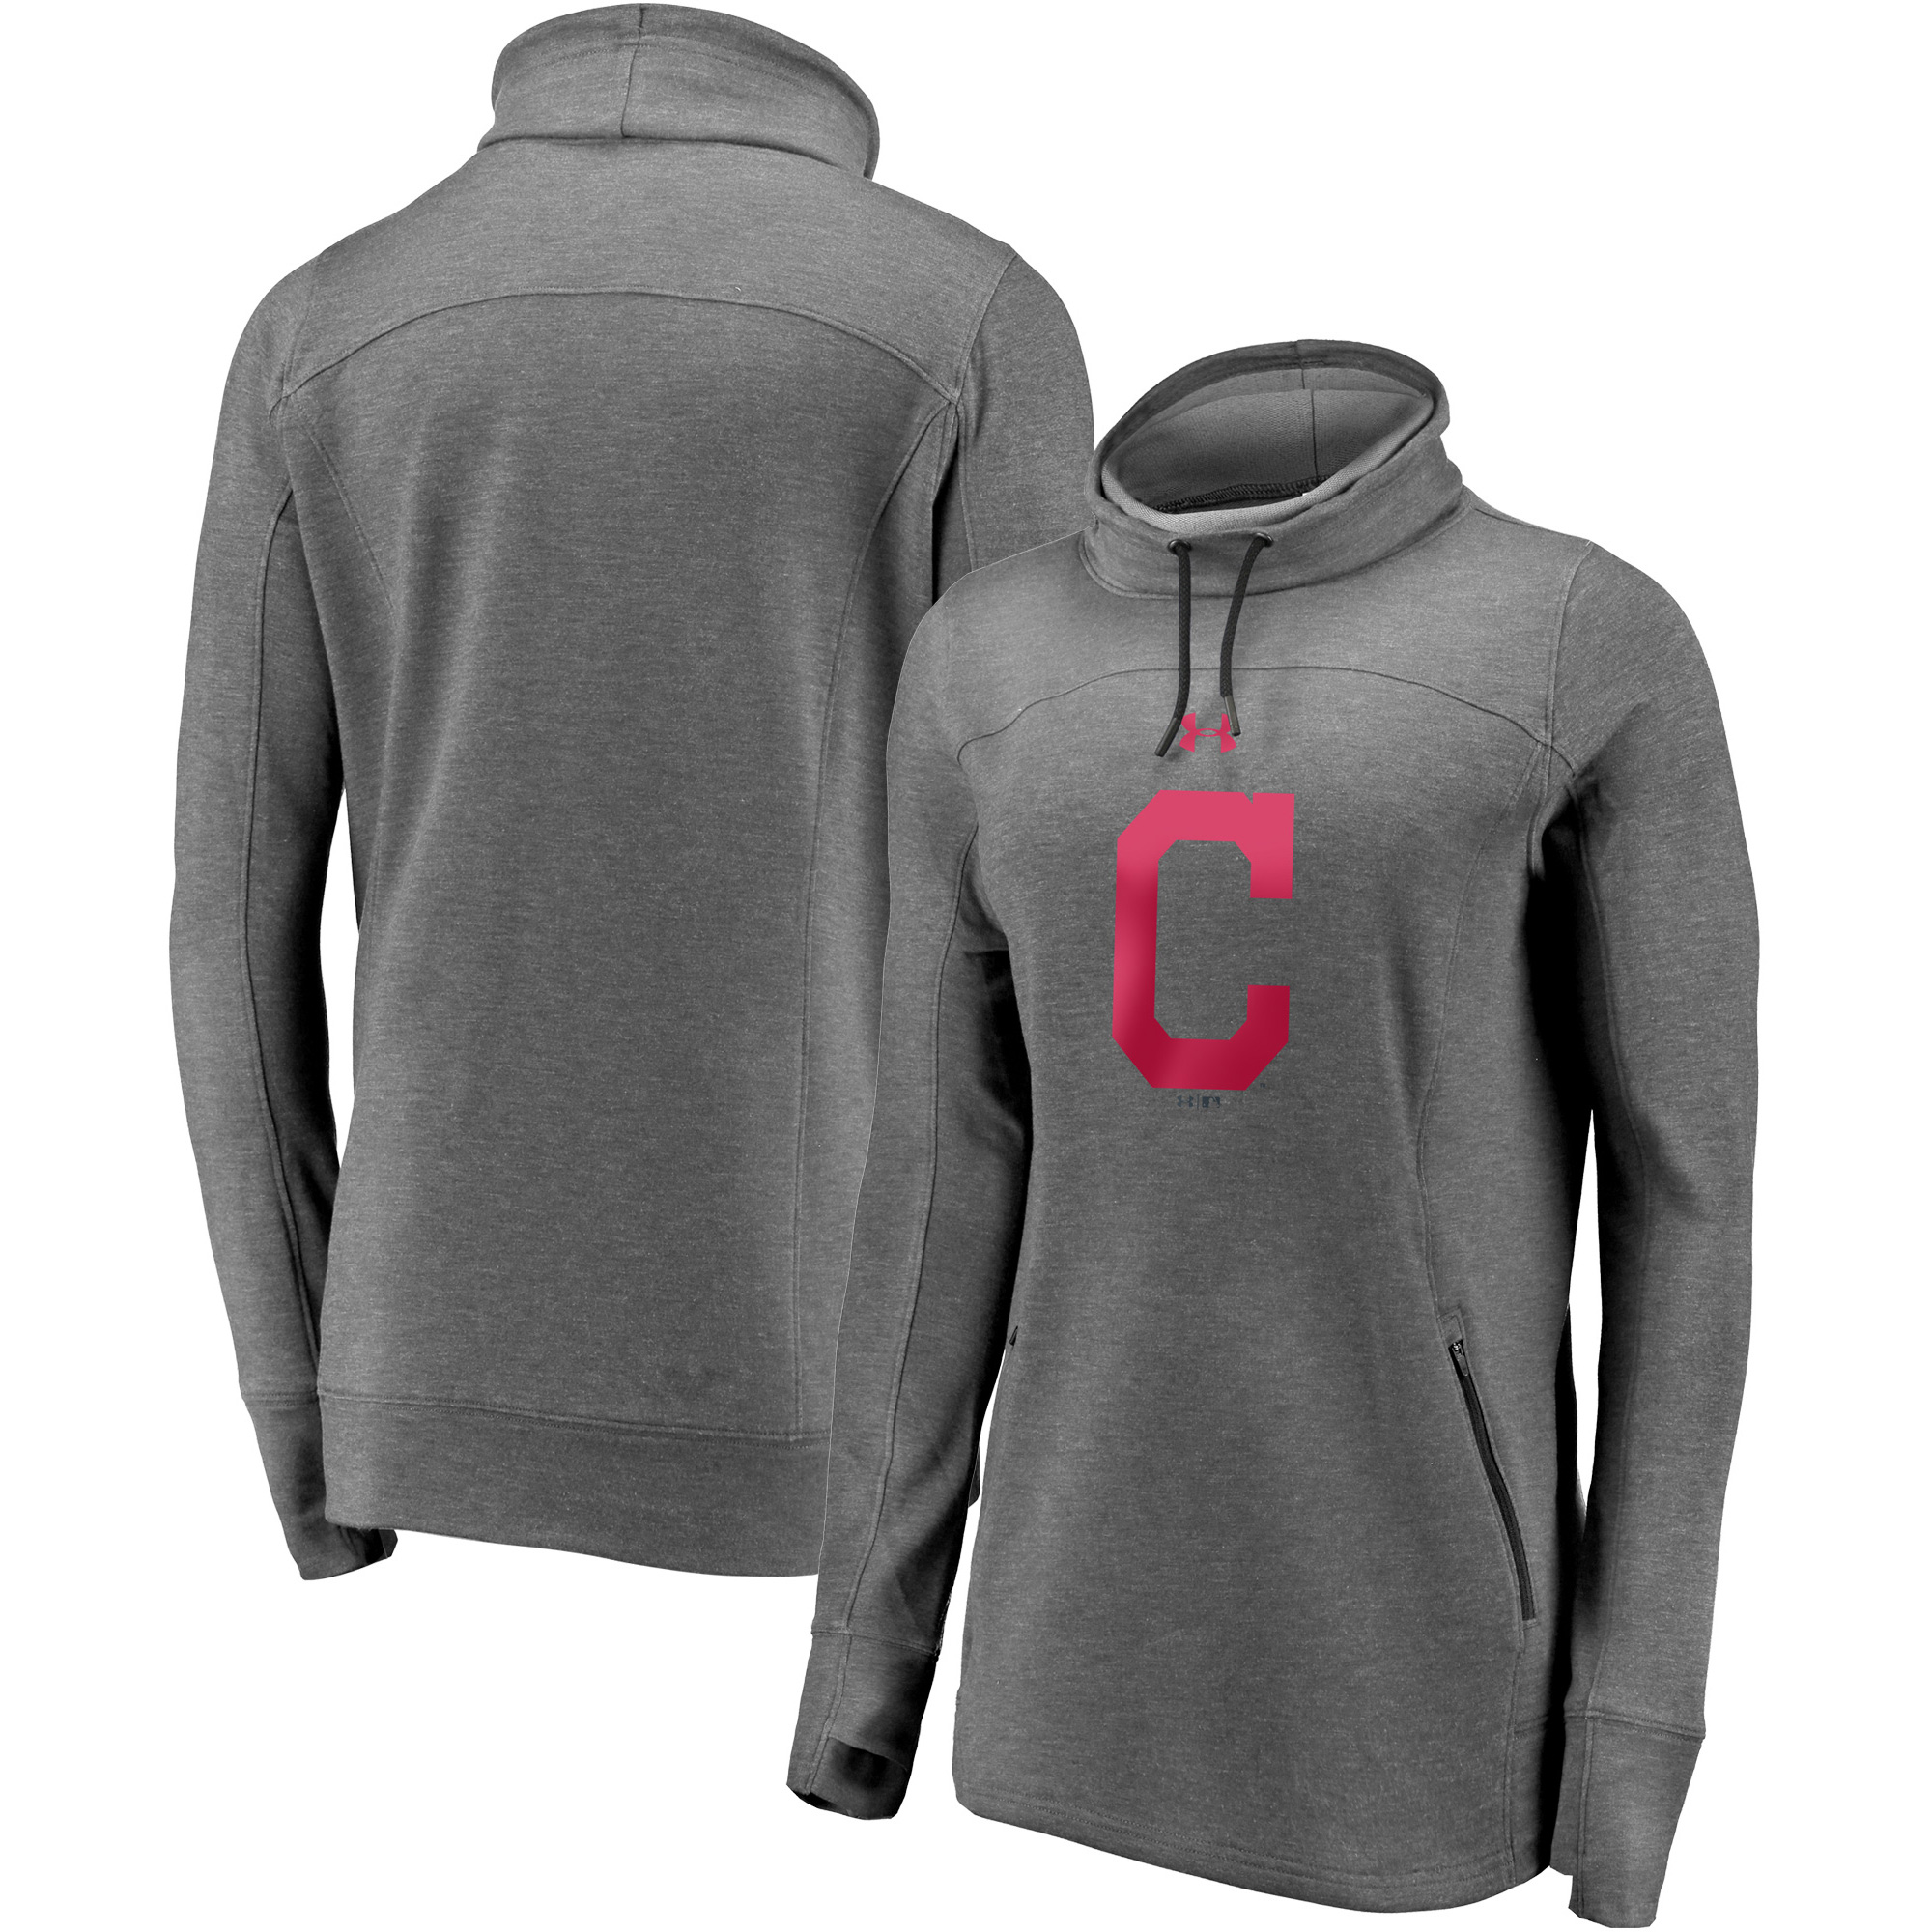 Cleveland Indians Under Armour Women's Team Mark Performance Tri-Blend Pullover Sweatshirt - Heathered Charcoal